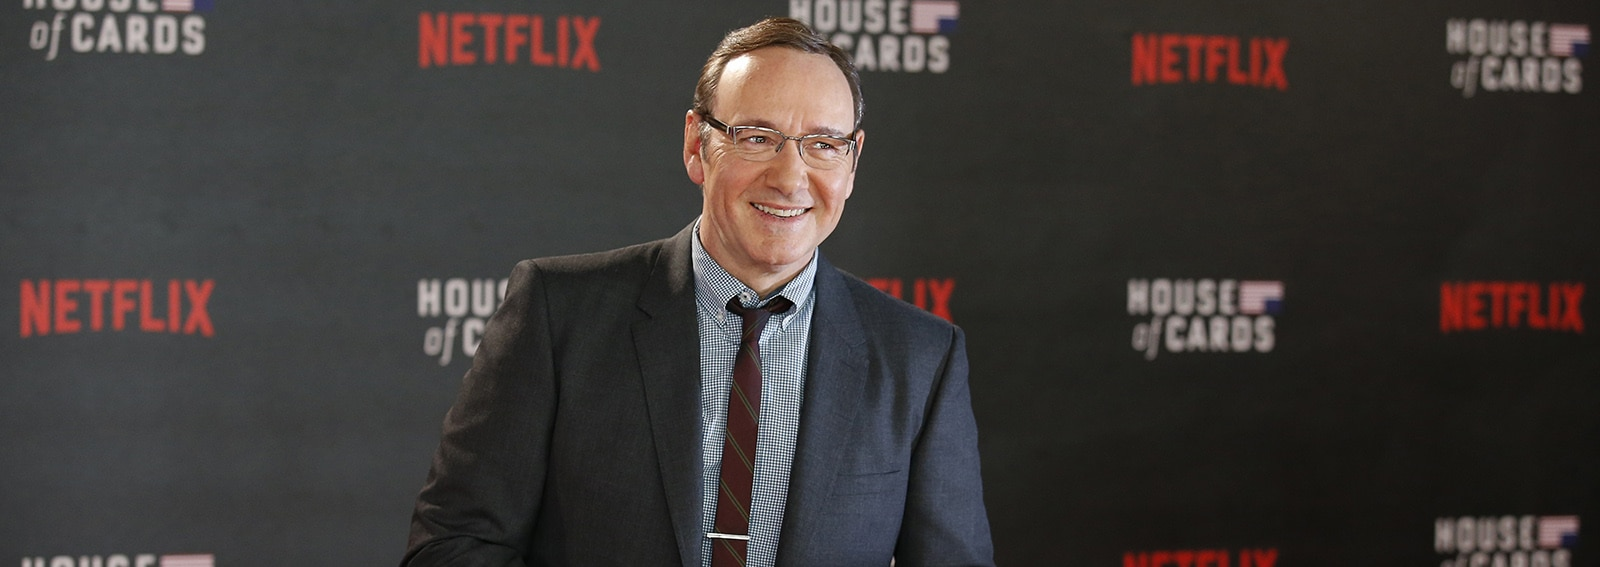 cover kevin spacey accusato molestie sessuali desktop